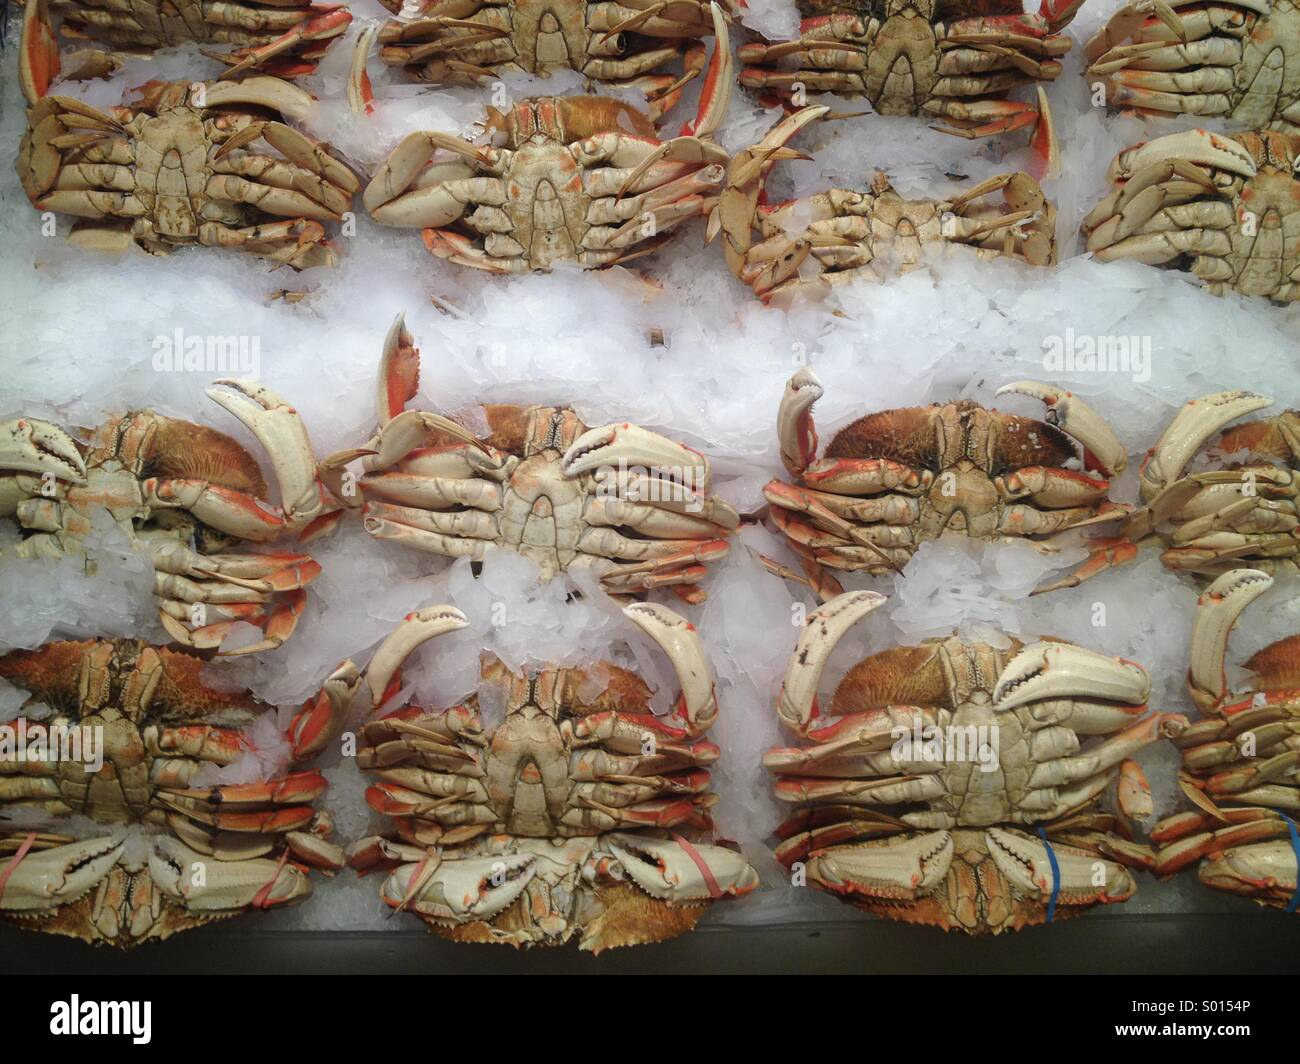 Crab for sale, Pike Place Market, Seattle USA - Stock Image